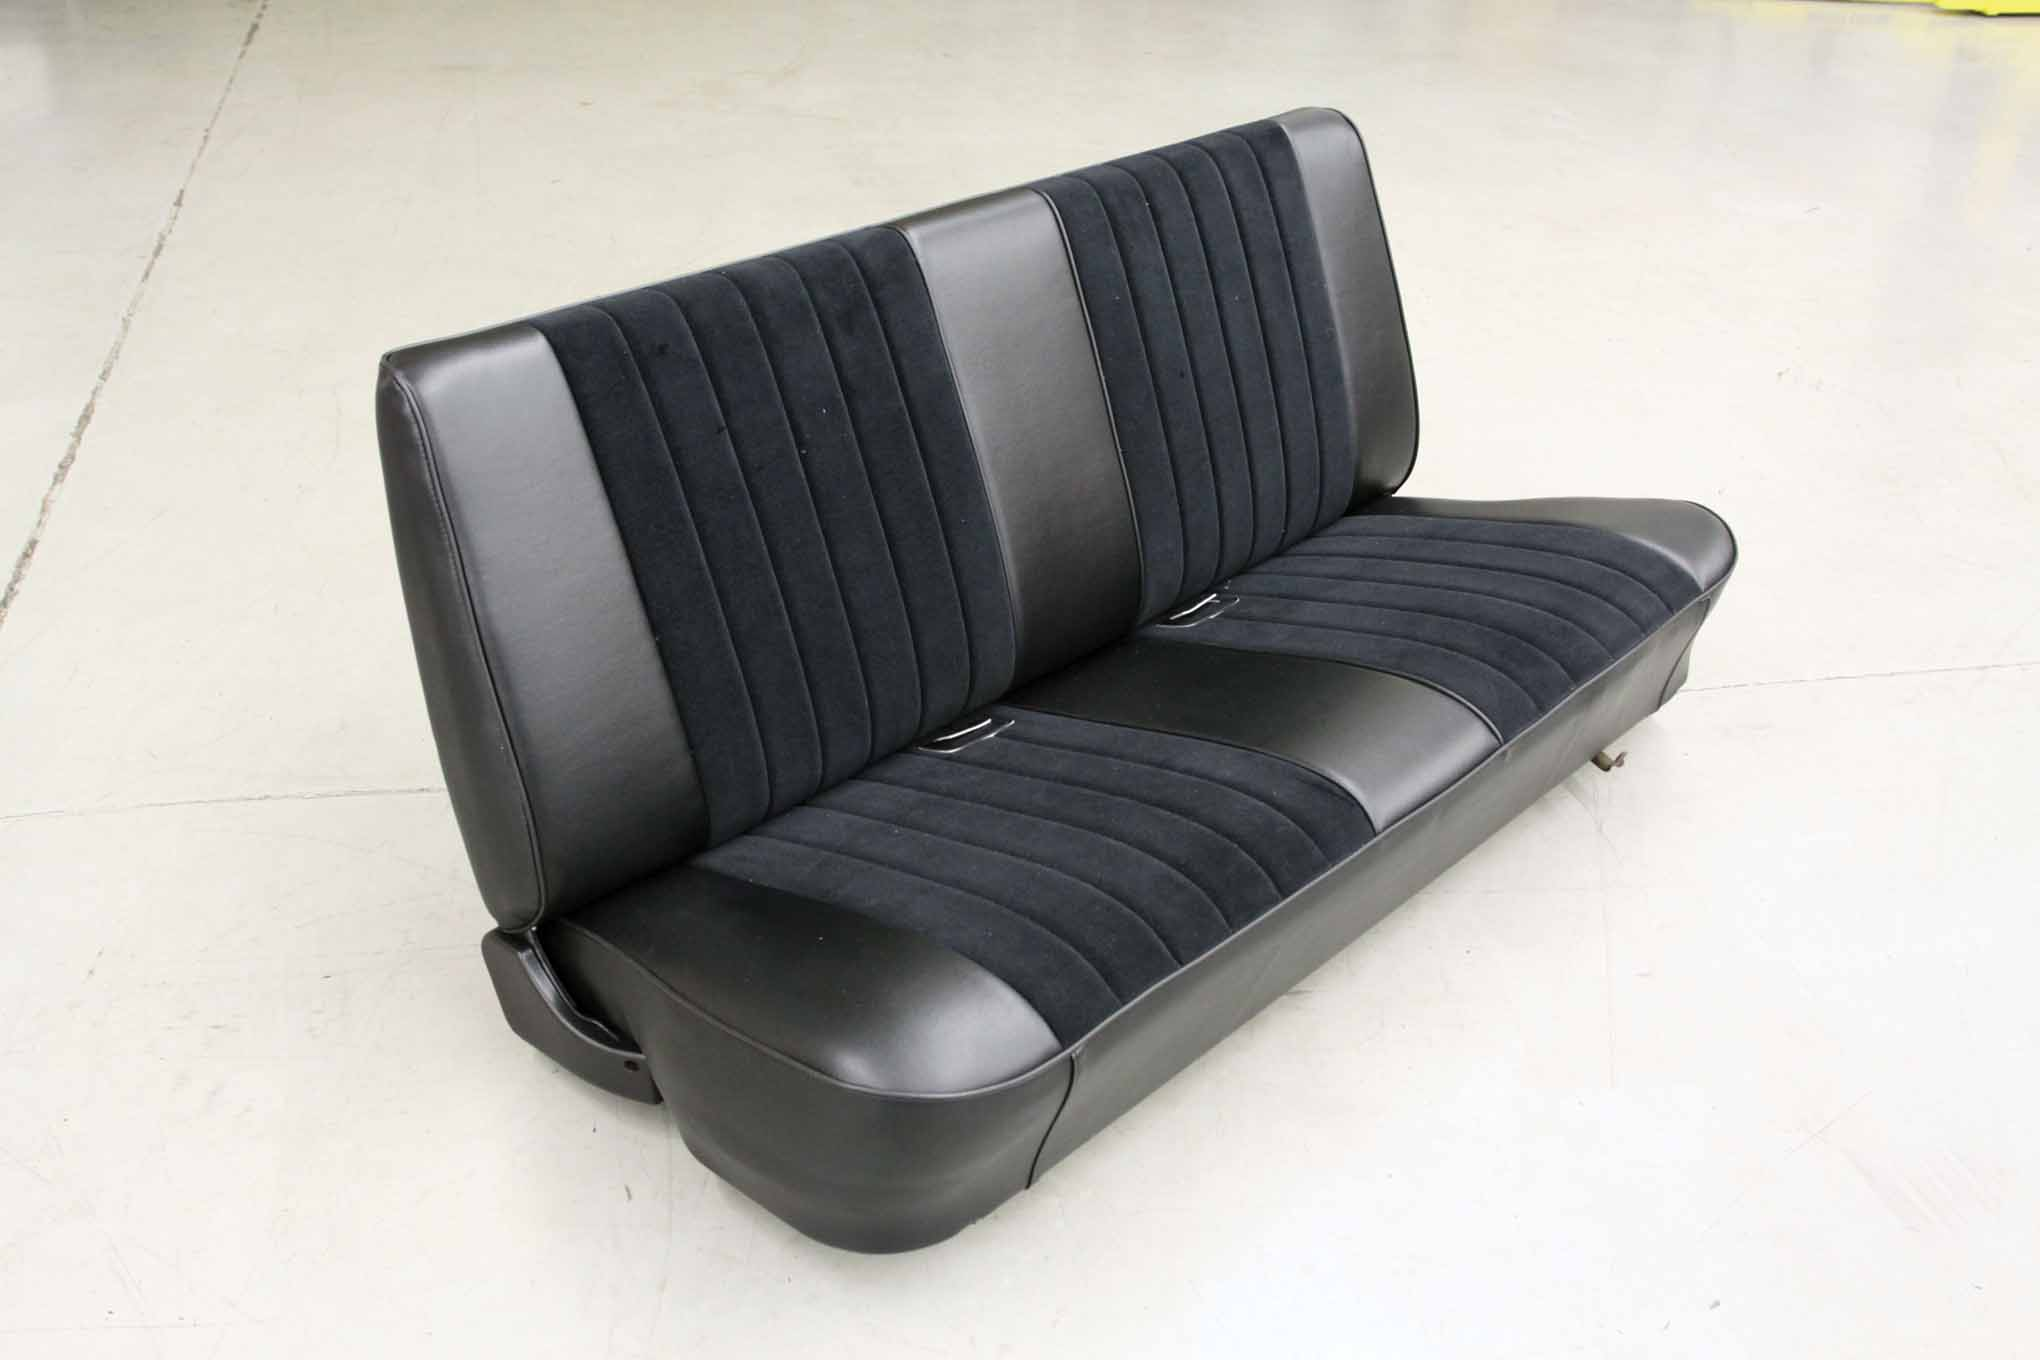 California Auto Upholstery in Garden Grove, California, proved the LMC Truck re-upholstery kit can be installed to look as nice as a custom-upholstered seat costing much more. Take your time, pay attention to detail, and you can achieve the same professional results.